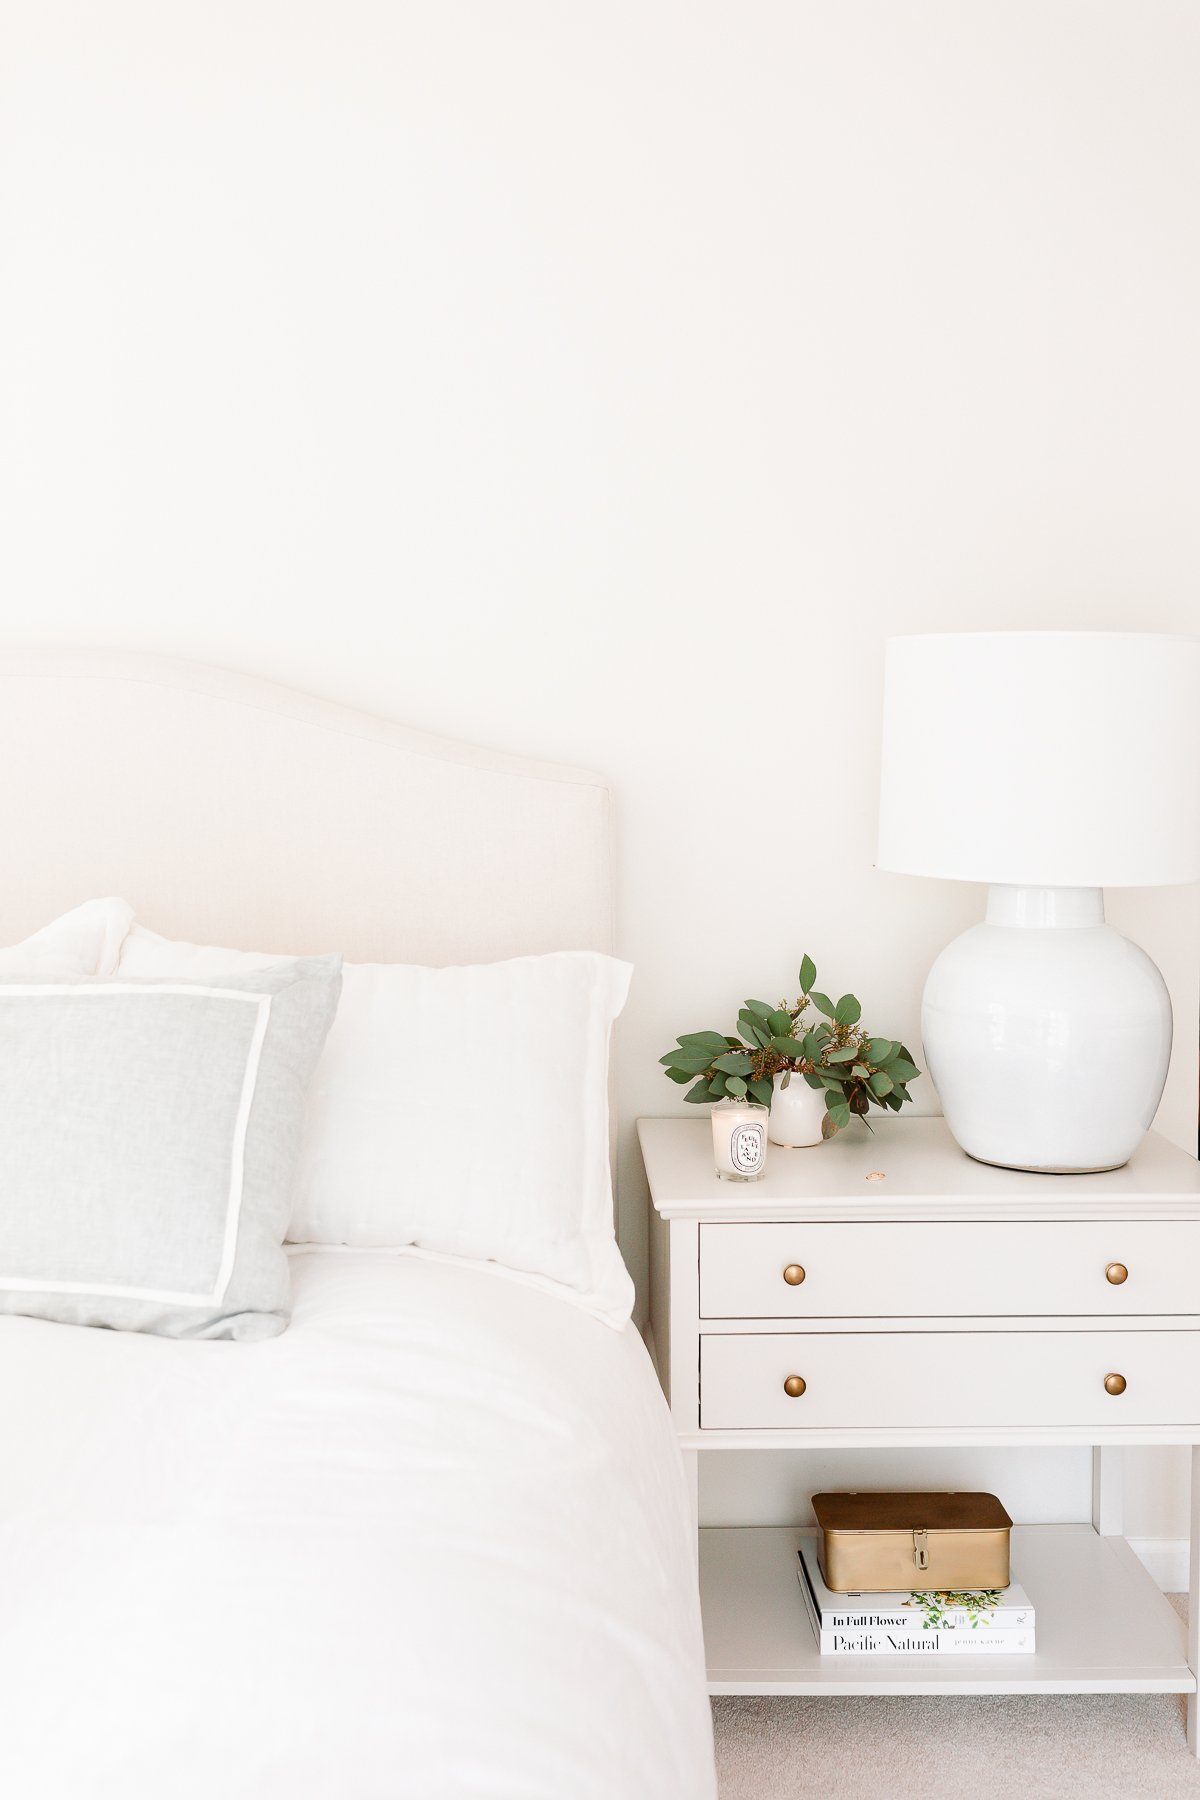 neutral bed and neutral nightstand at approximately the same bedside table height.